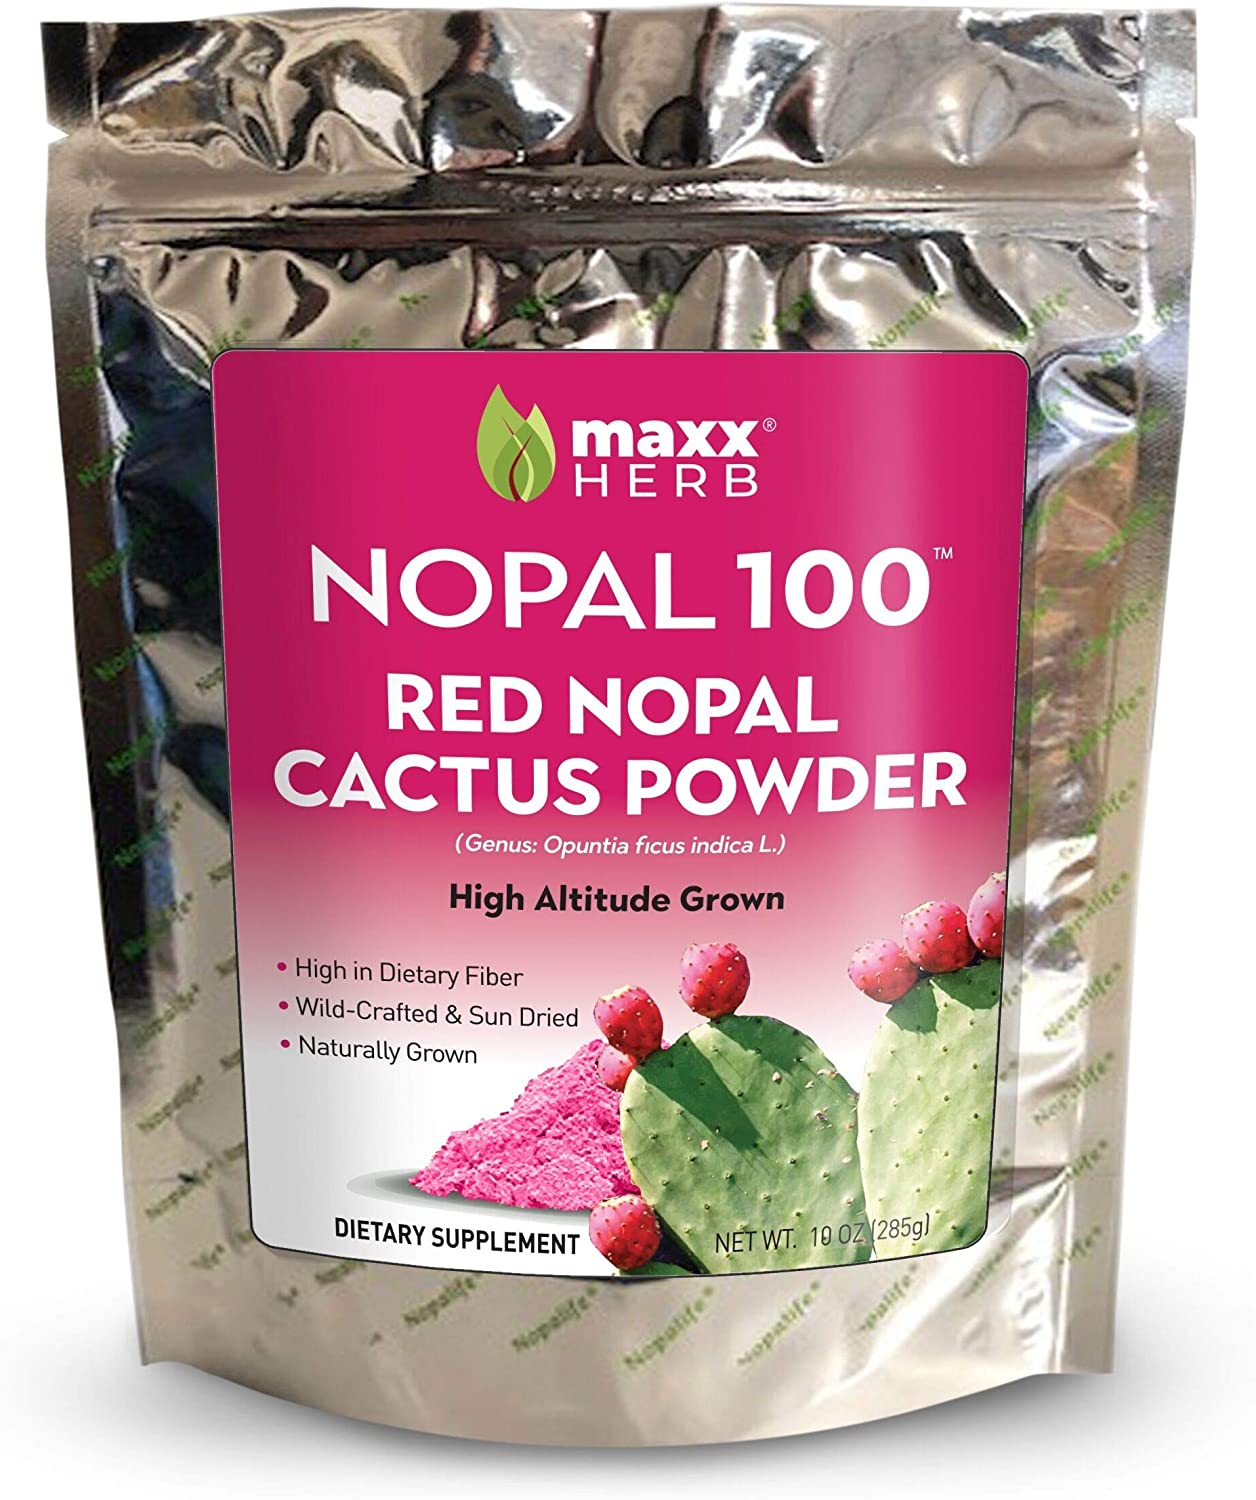 Maxx Herb Nopal 100 Red Nopal Cactus Powder (10 oz), for Blood Sugar Balance & Healthy Digestion, High in Dietary Fiber, Water Soluble, Vegan, Non-GMO and Gluten Free -1 Bag (28 Servings)